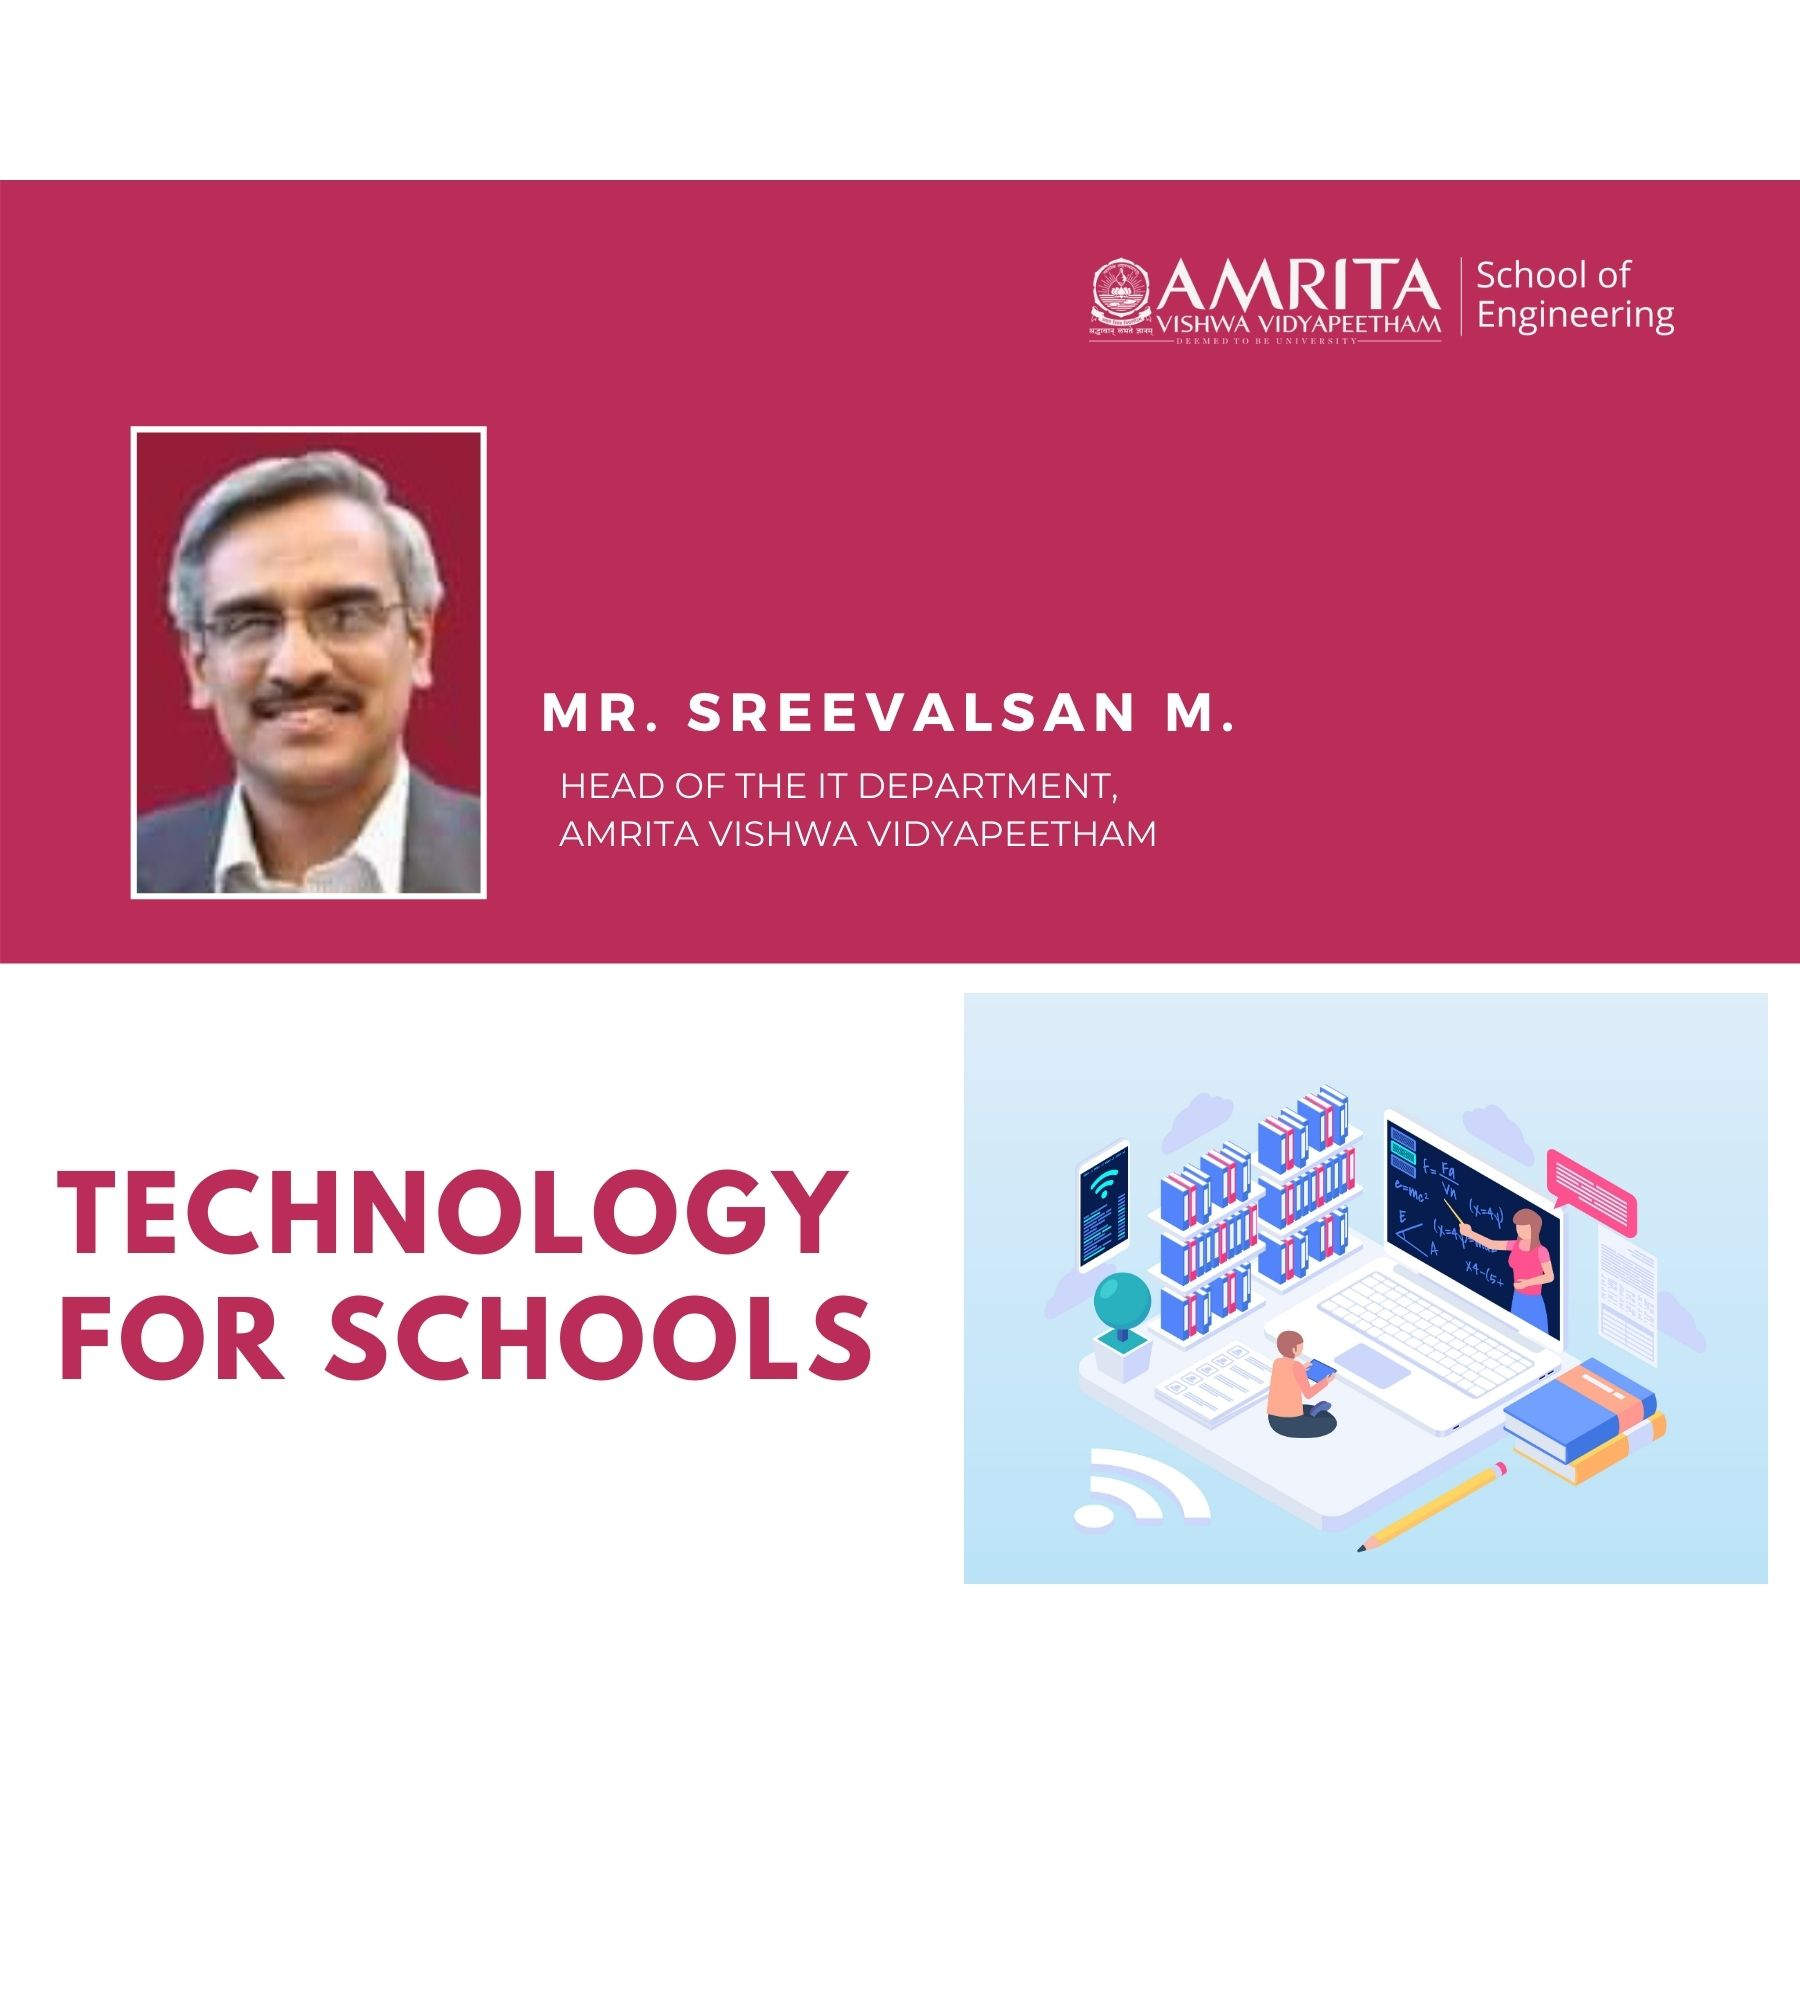 Technology for Schools - Mr. Sreevalsan M